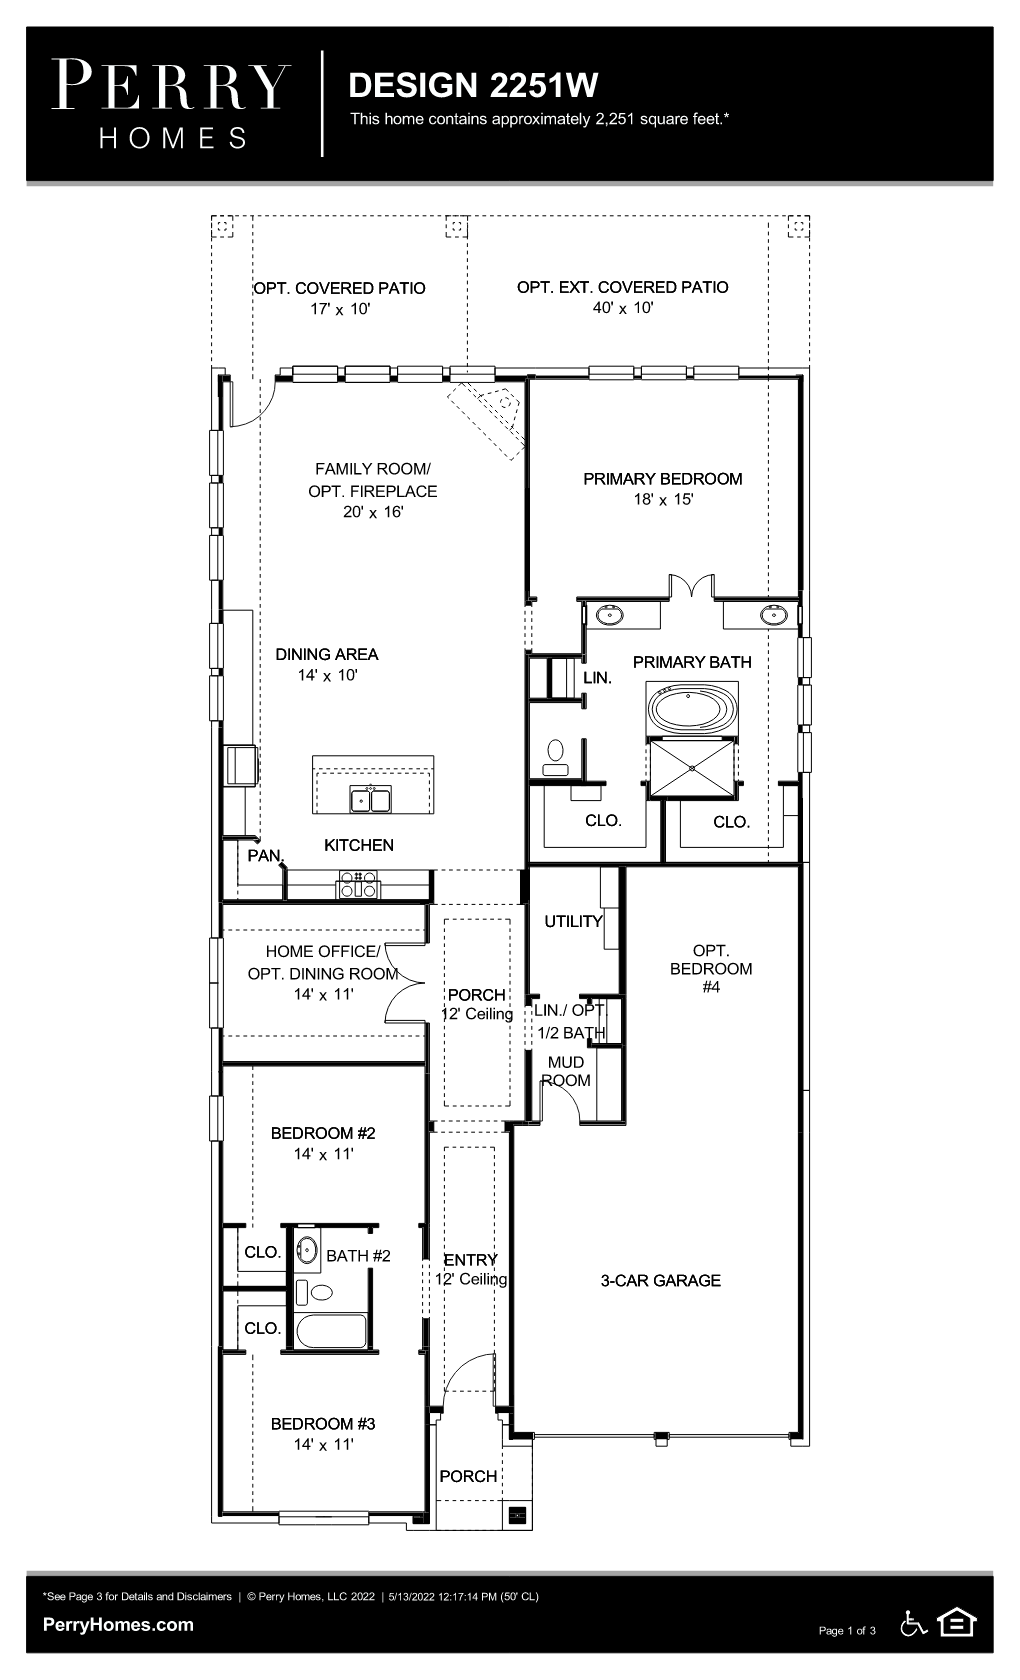 Floor Plan for 2251W